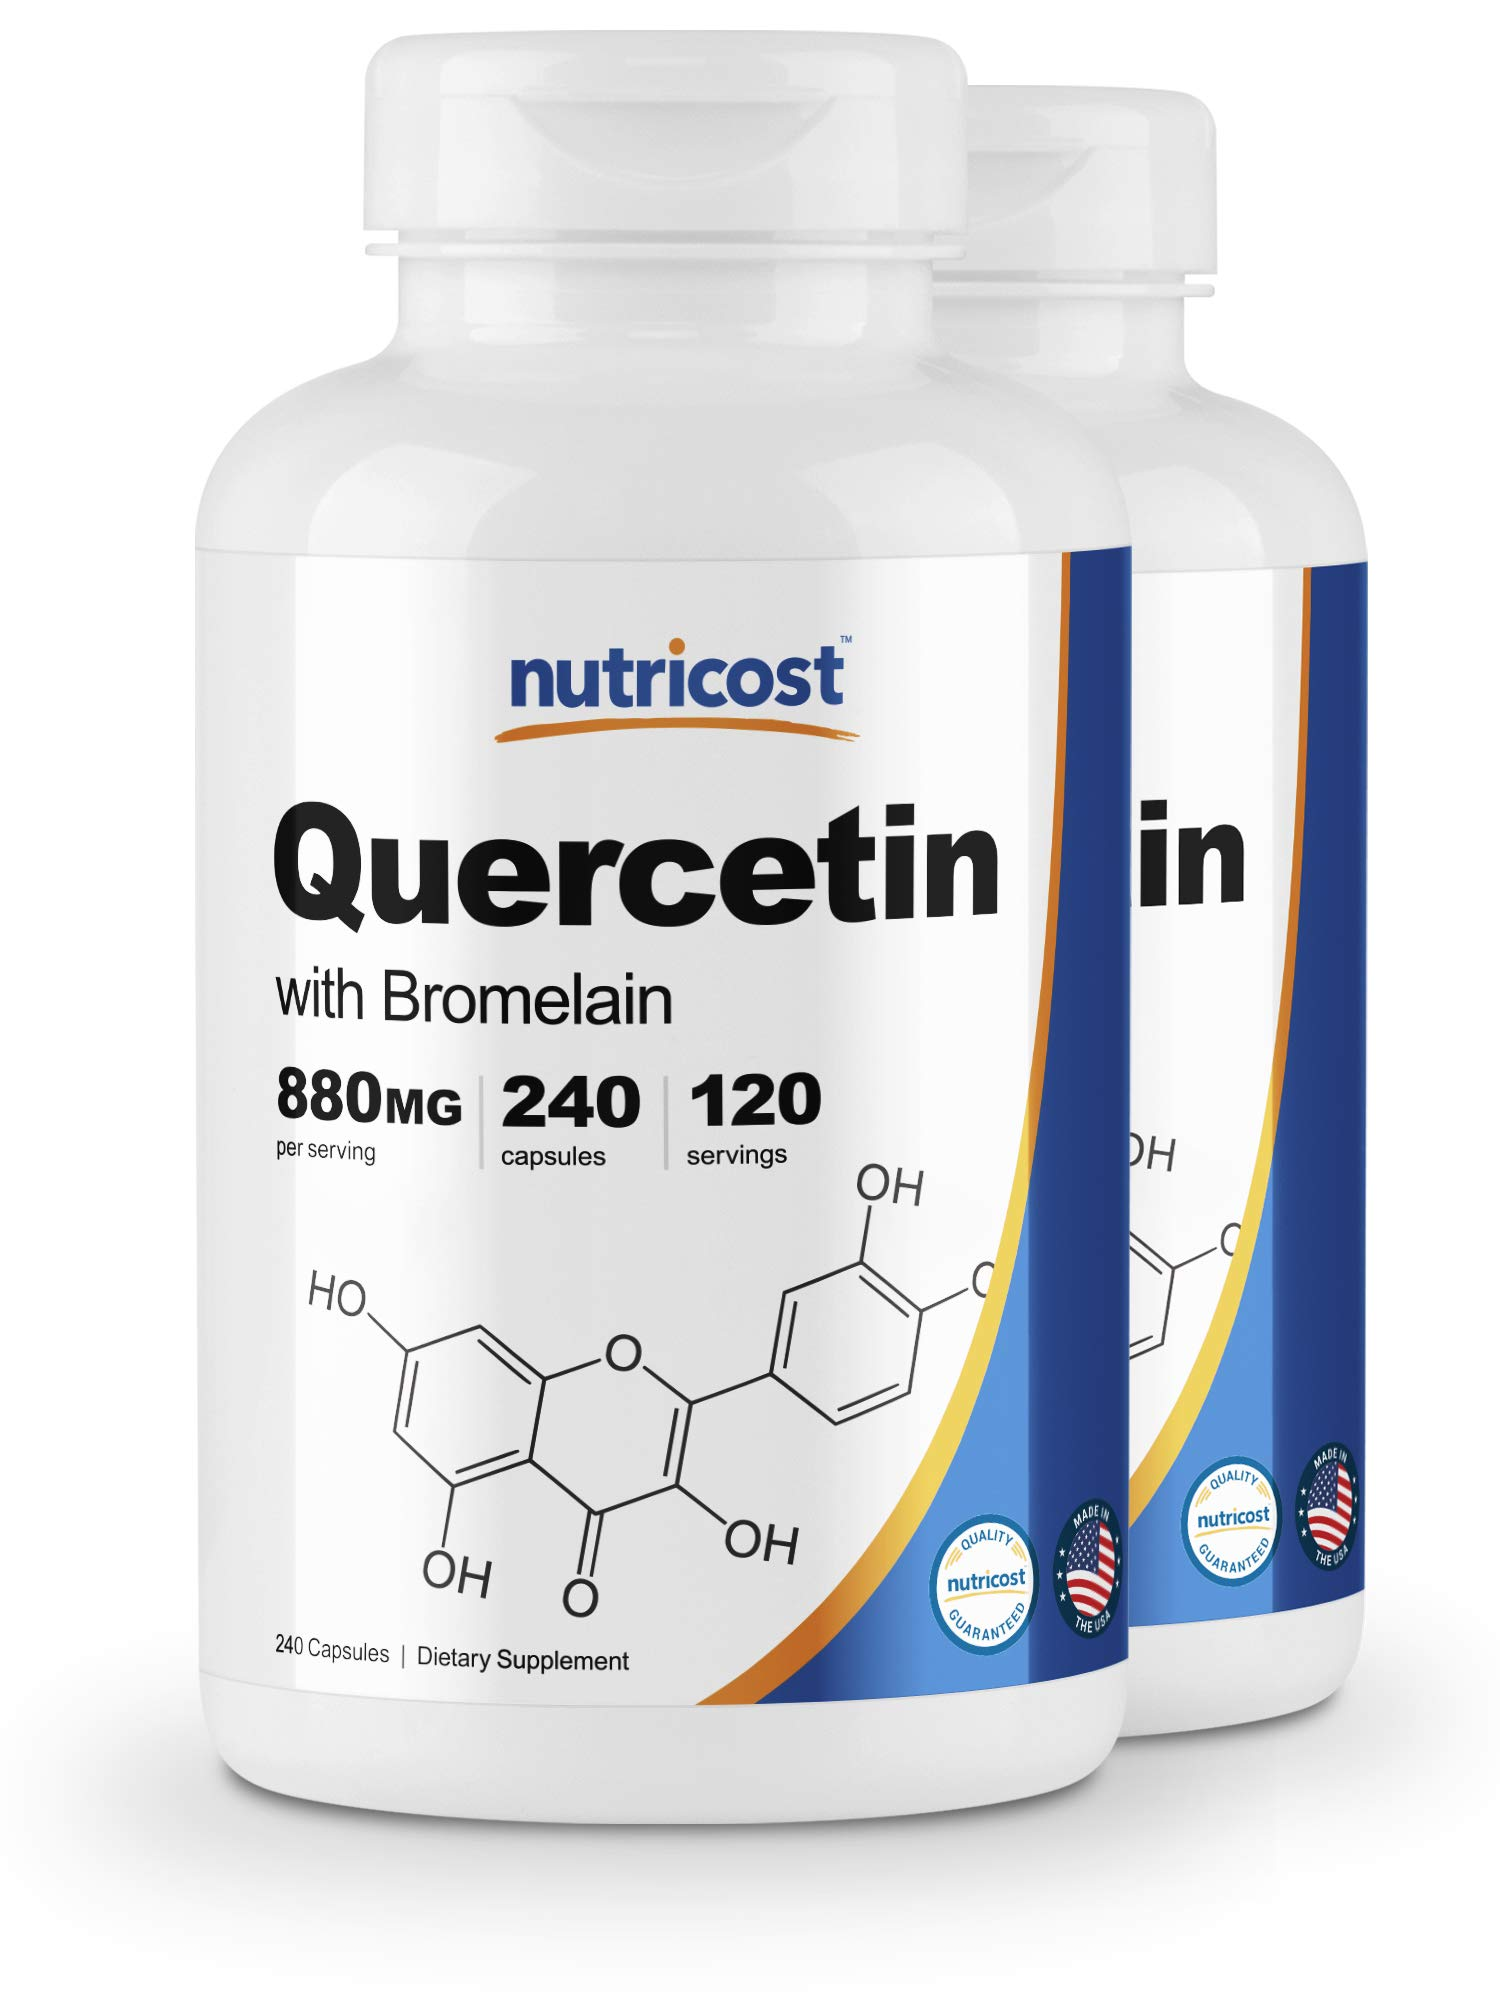 Nutricost Quercetin 880mg, 240 Caps with Bromelain (2 Bottles) by Nutricost